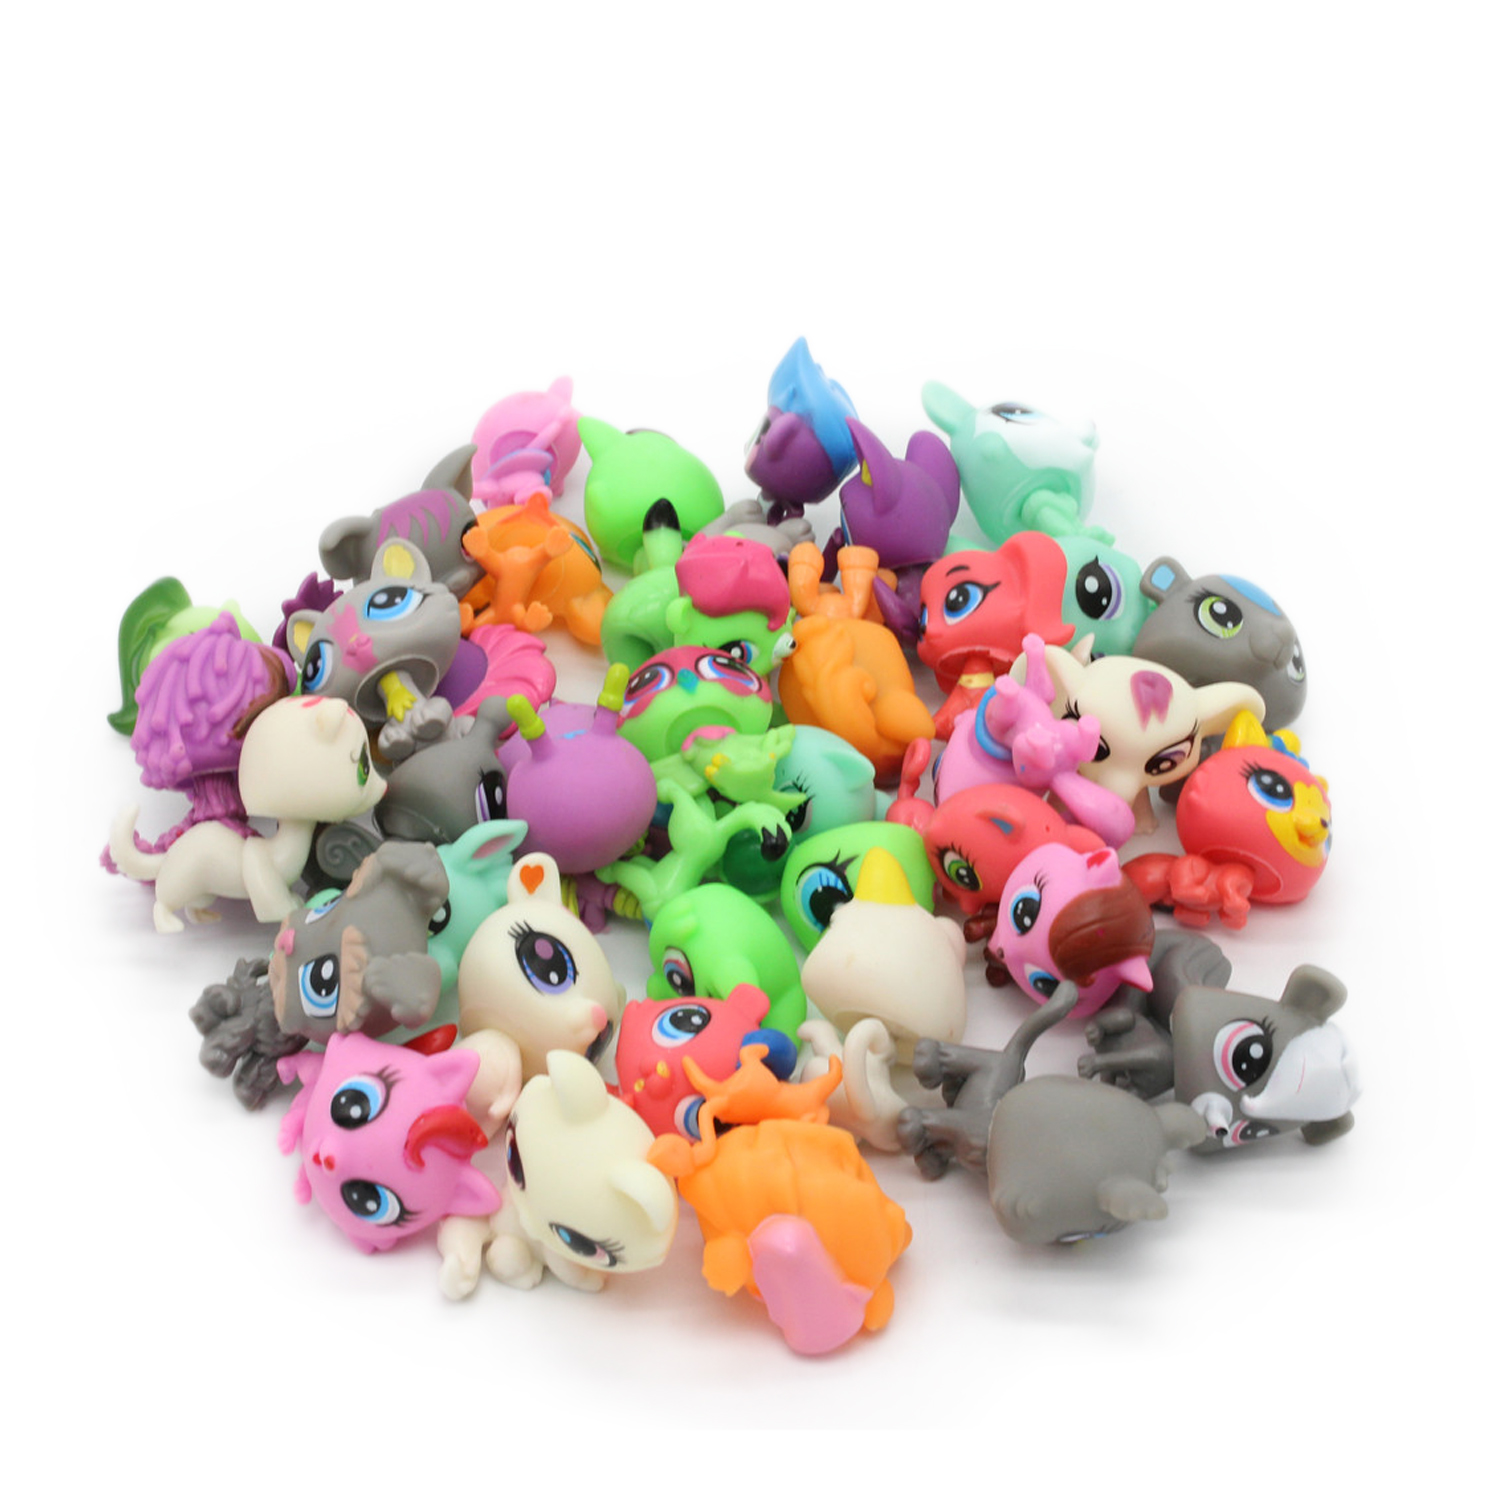 Wenhsin New Style Toy Bag 32Pcs/bag Little Pet Shop Mini Toy Animal Cat Patrulla Canina Dog Action Figures Kids Toys